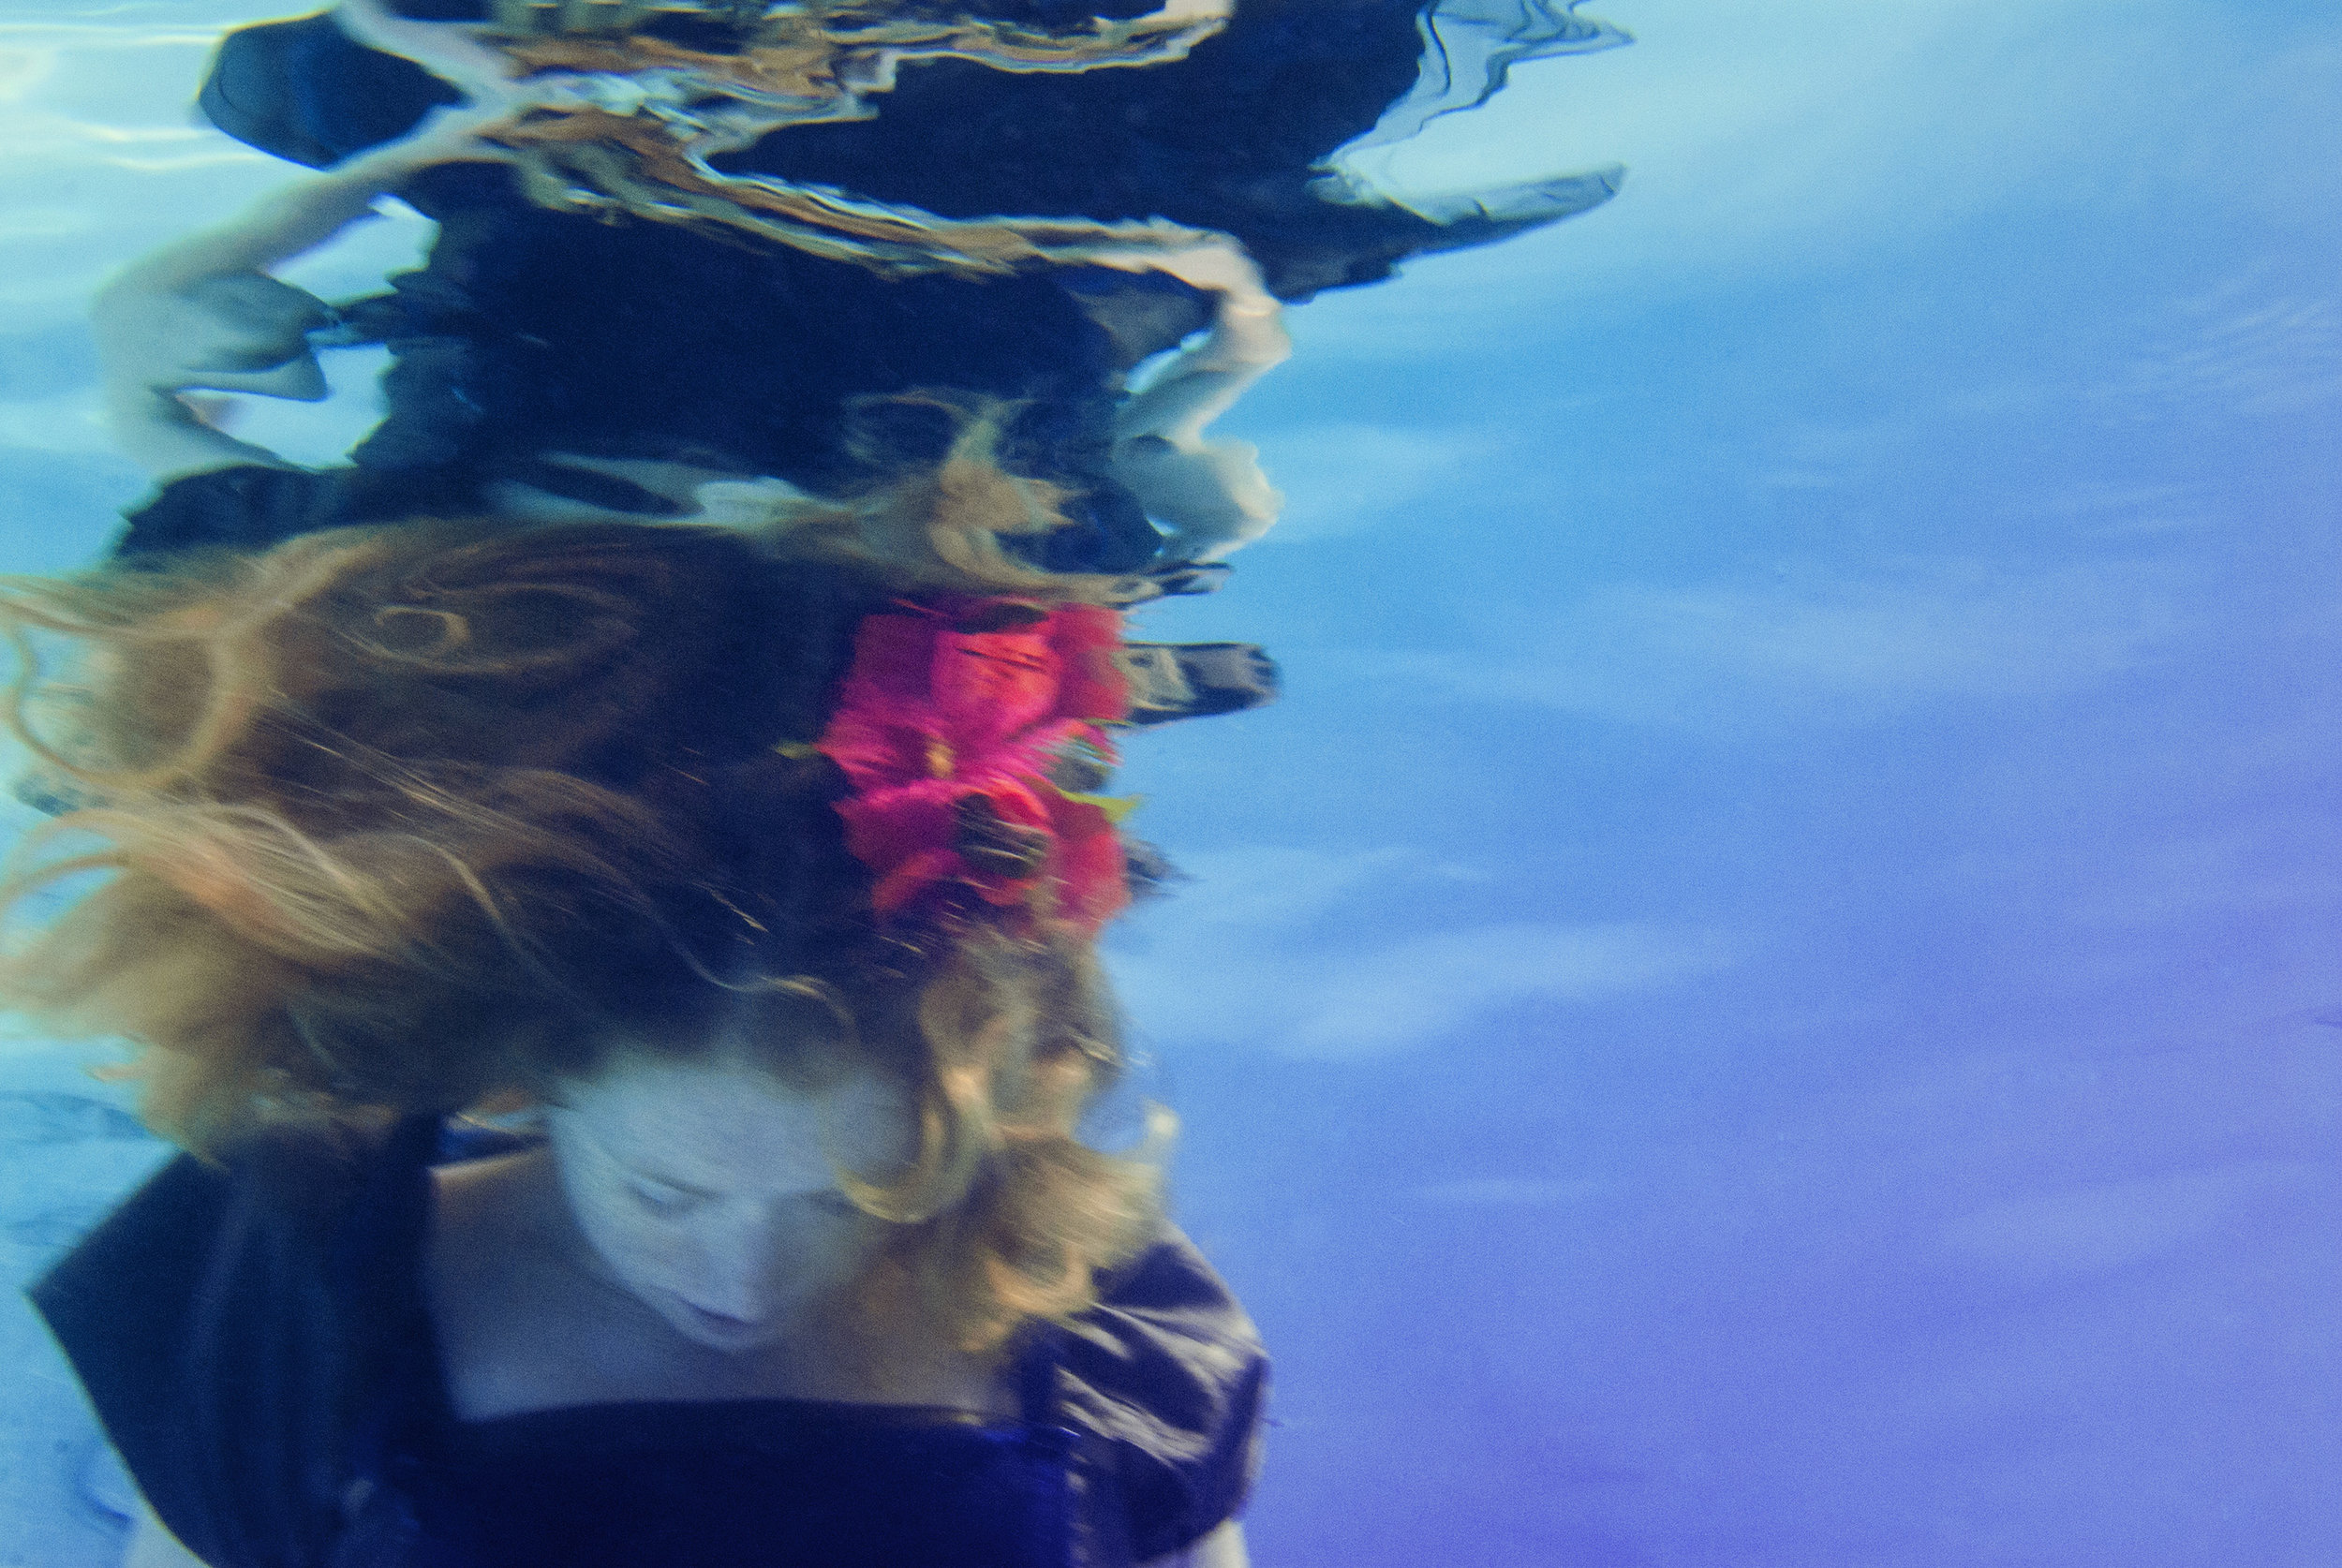 underwater photography enchanting dreaming creative